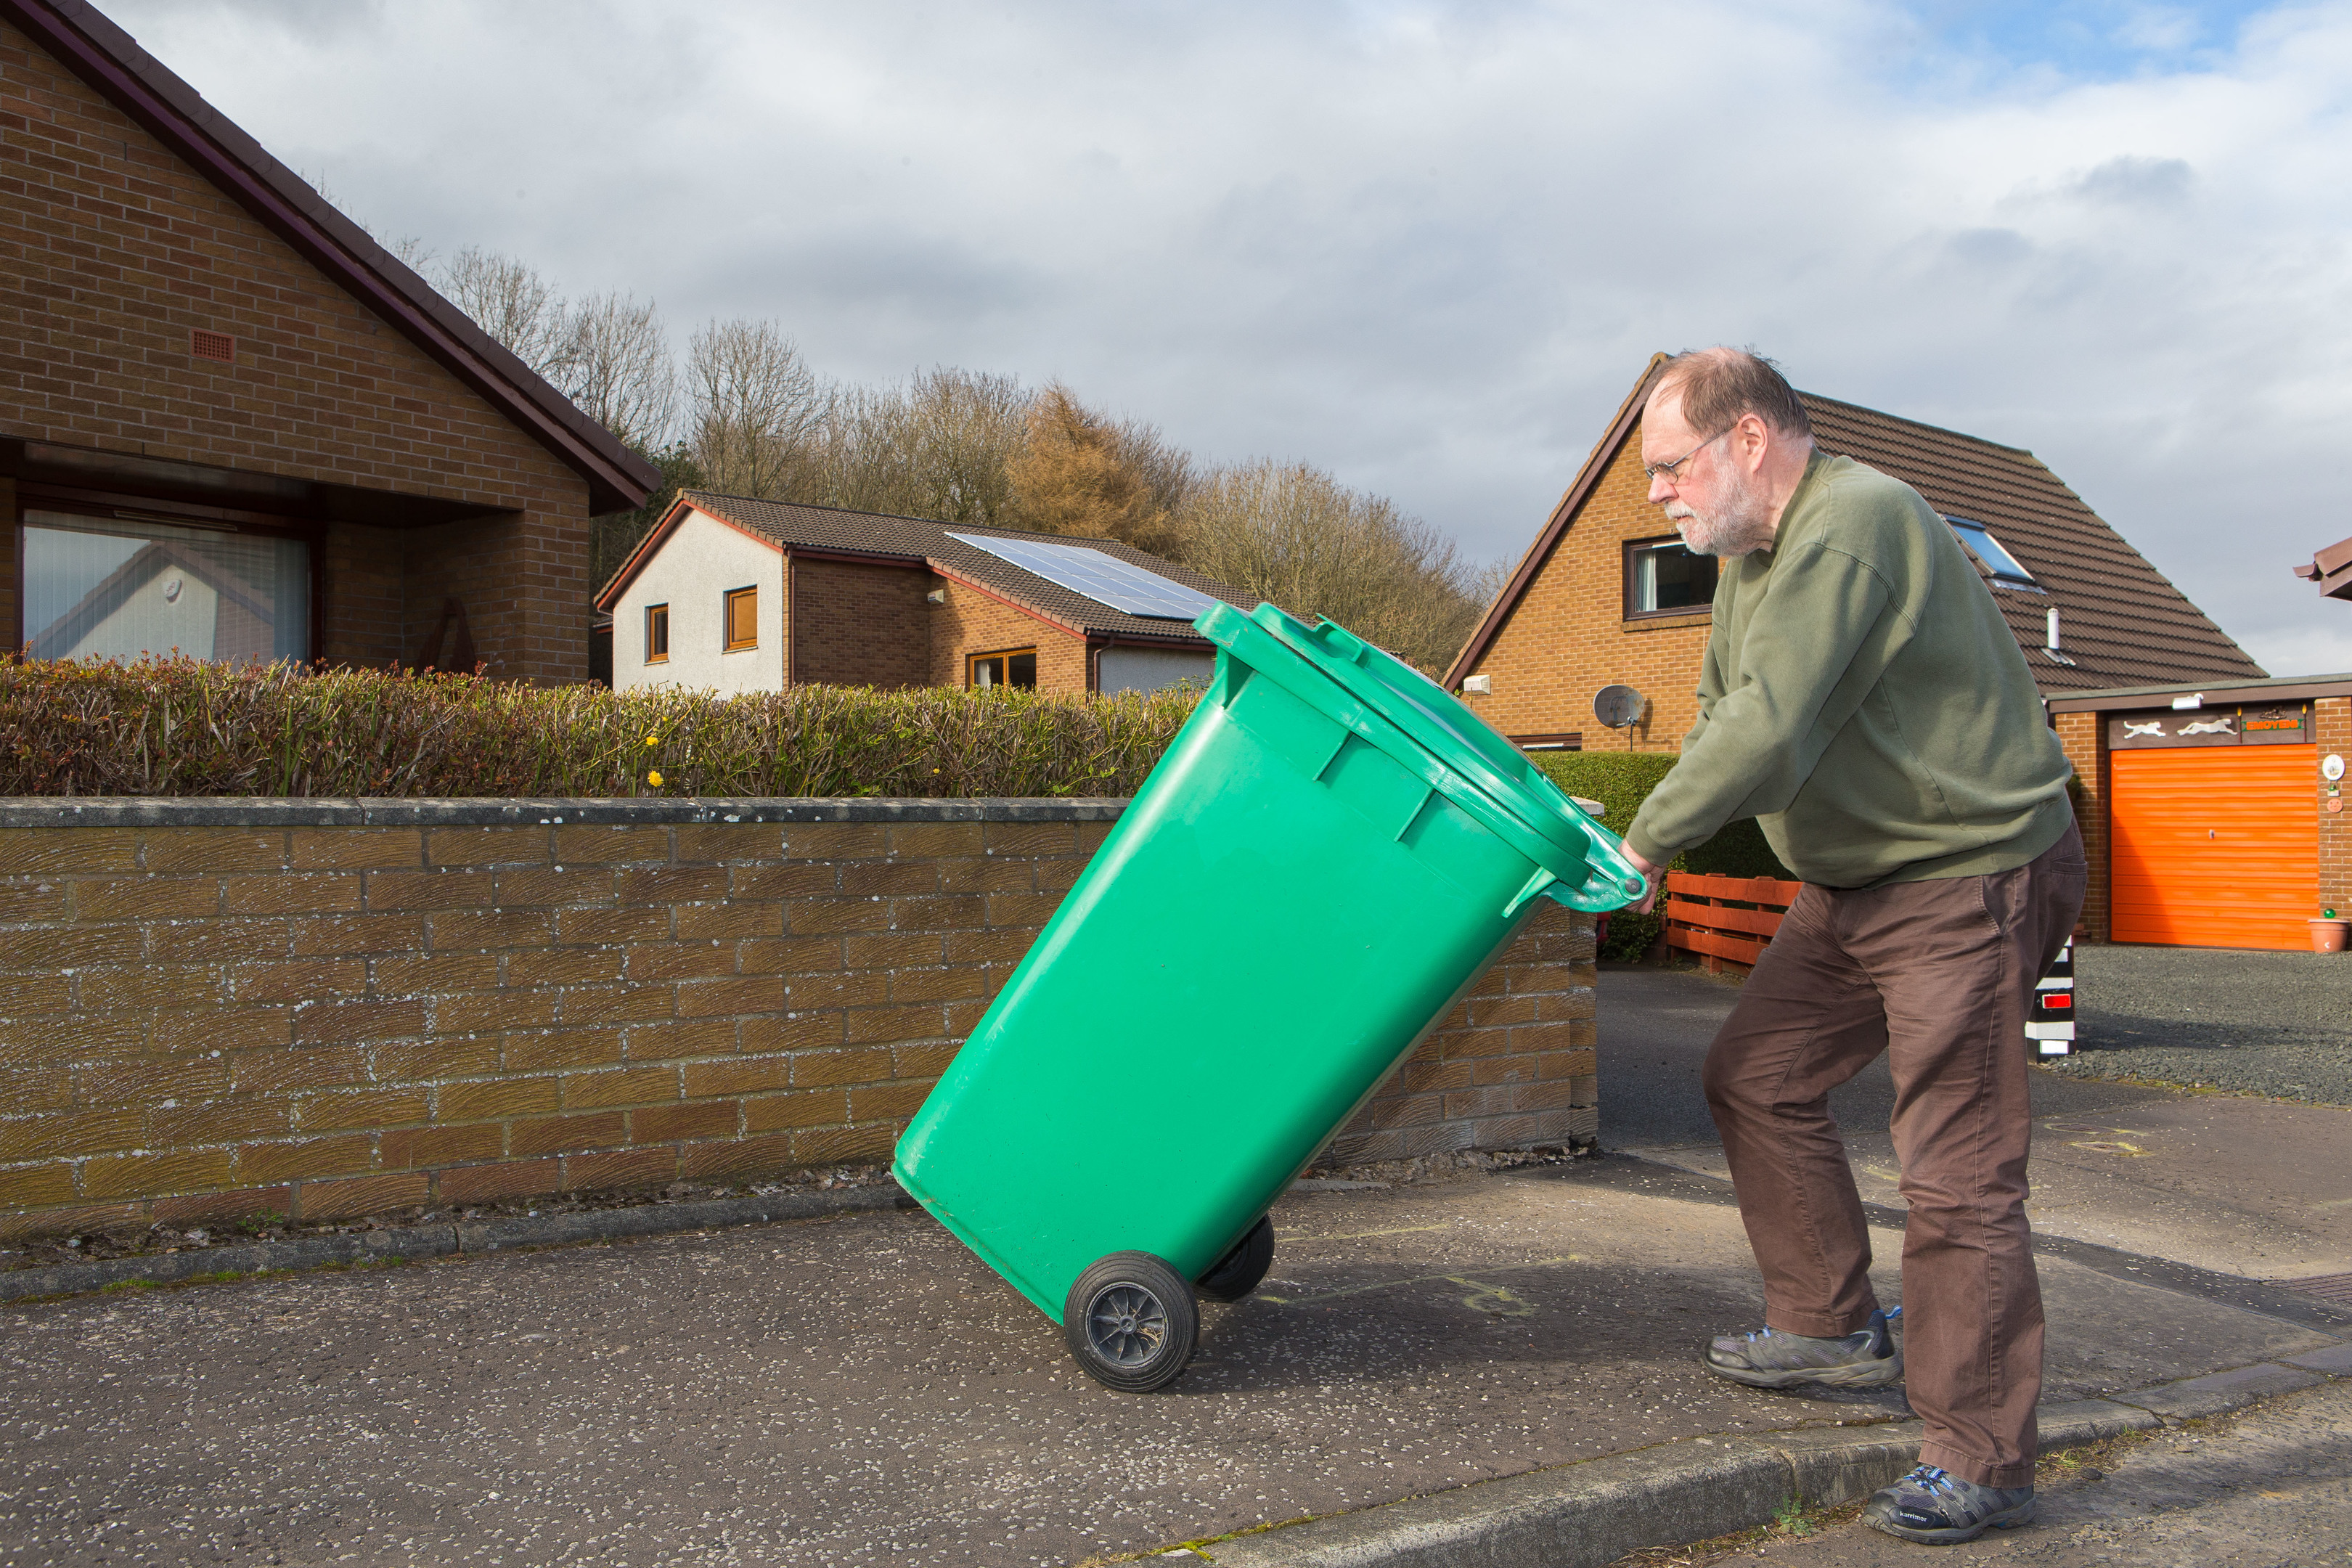 Councillor Dave Dempsey is proposing the council supply a solution to stop the rubbish emptying into the street when the bins are blown over in the wind.